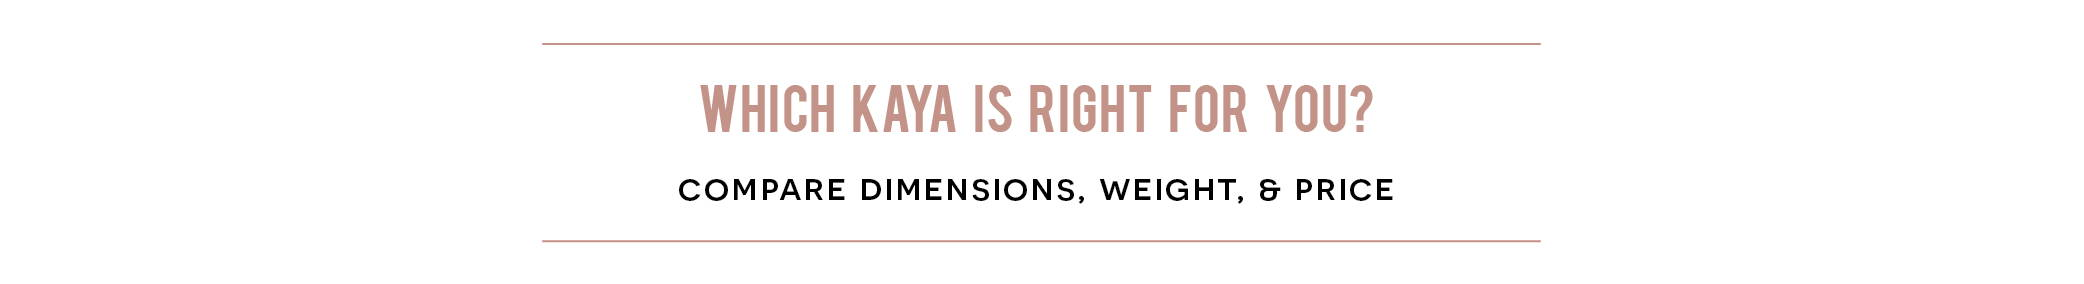 WHICH KAYA IS RIGHT FOR YOU?